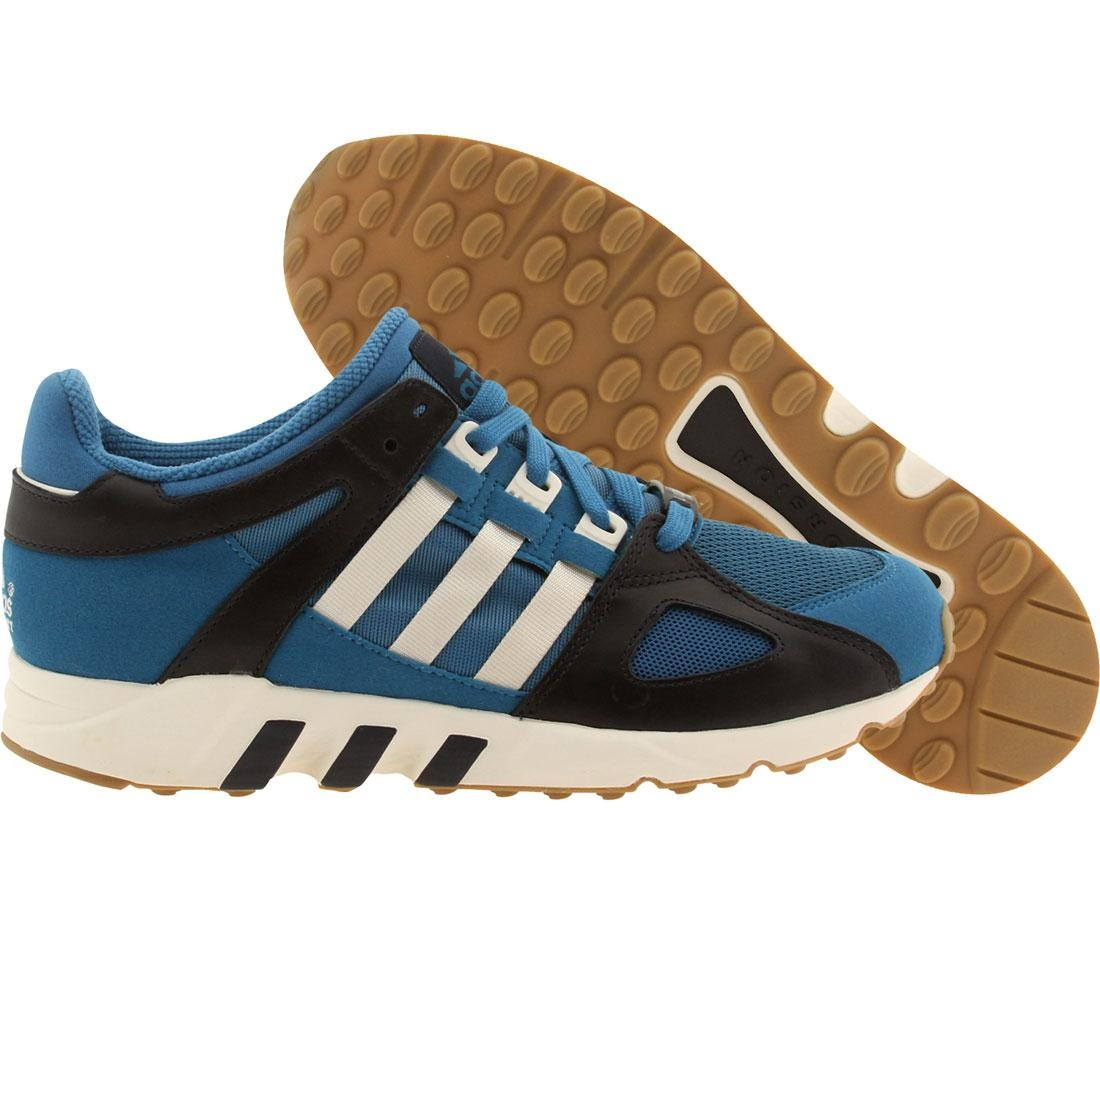 【海外限定】アディダス メンズ靴 スニーカー 【 ADIDAS MEN EQUIPMENT RUNNING GUIDANCE BLUE HERBLU CWHITE LEGINK 】